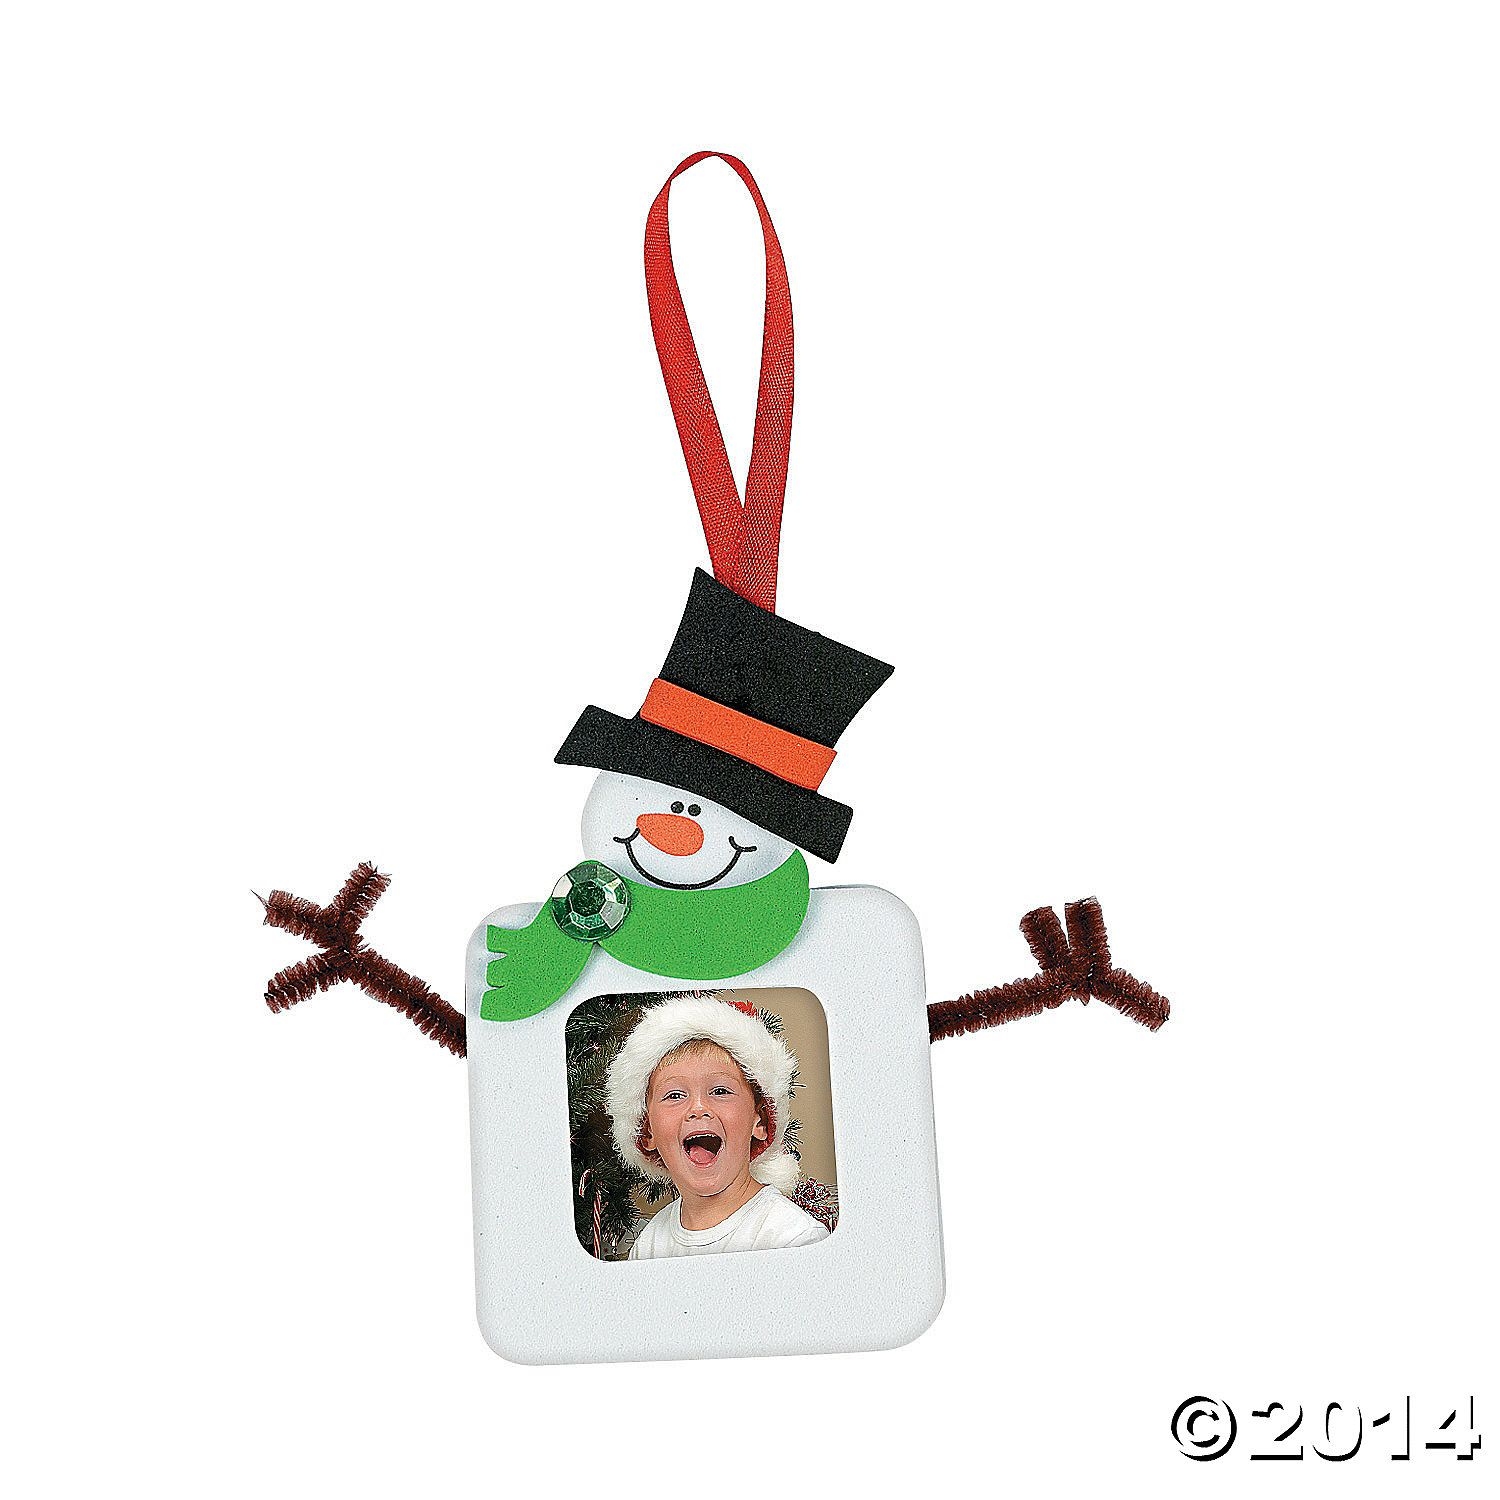 Square Snowman Picture Frame Christmas Ornament Craft Kit Orientaltrading Com Picture Frame Christmas Ornaments Christmas Ornament Crafts Christmas Ornaments